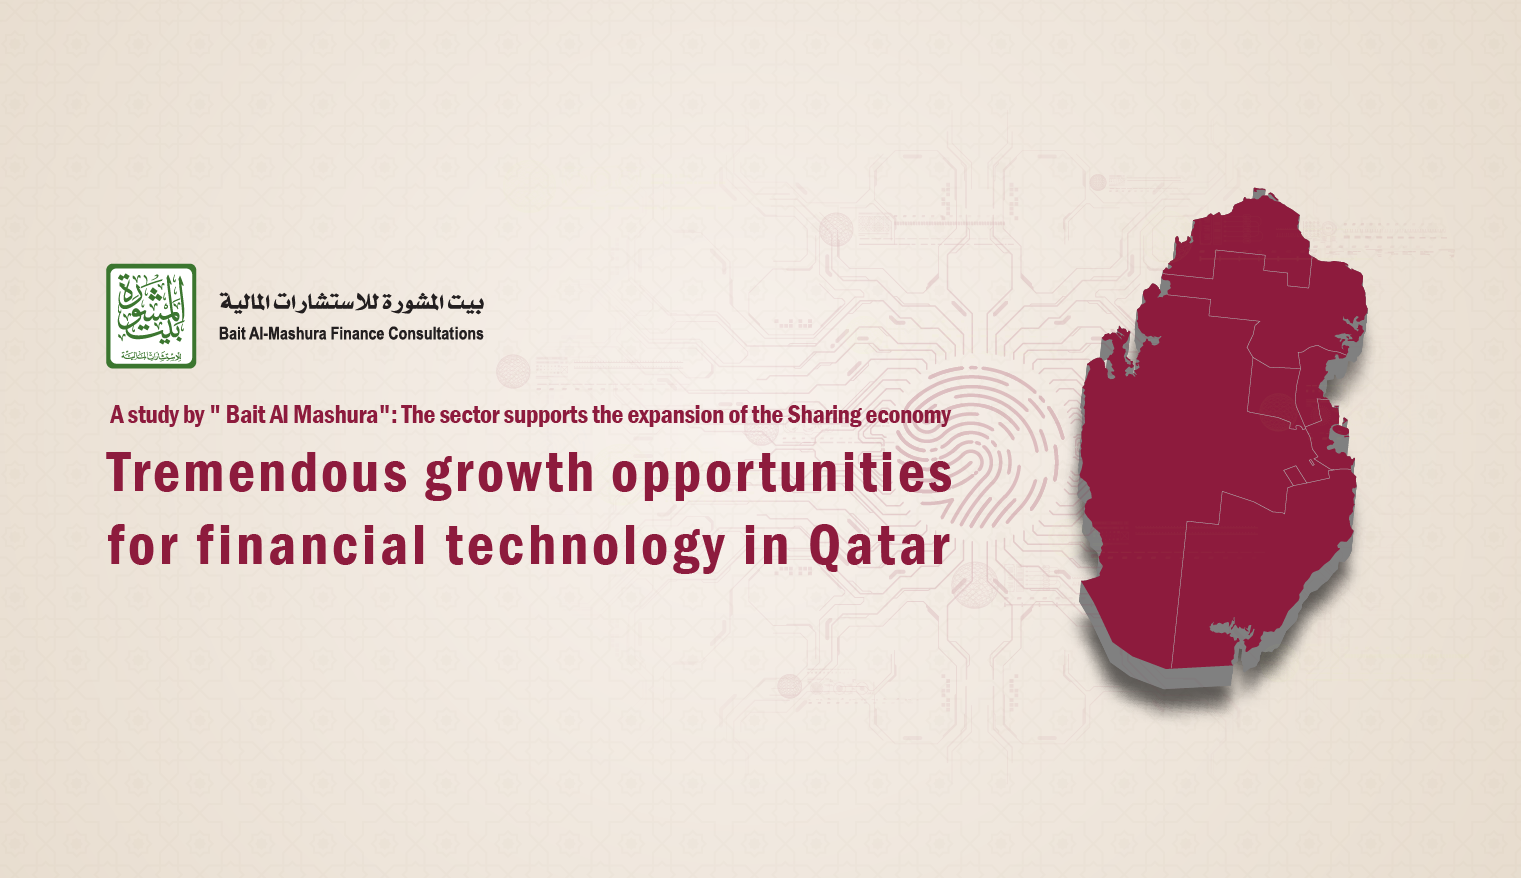 Qatar is eligible to become a regional center for financial technology and banks are making investments to develop its electronic services